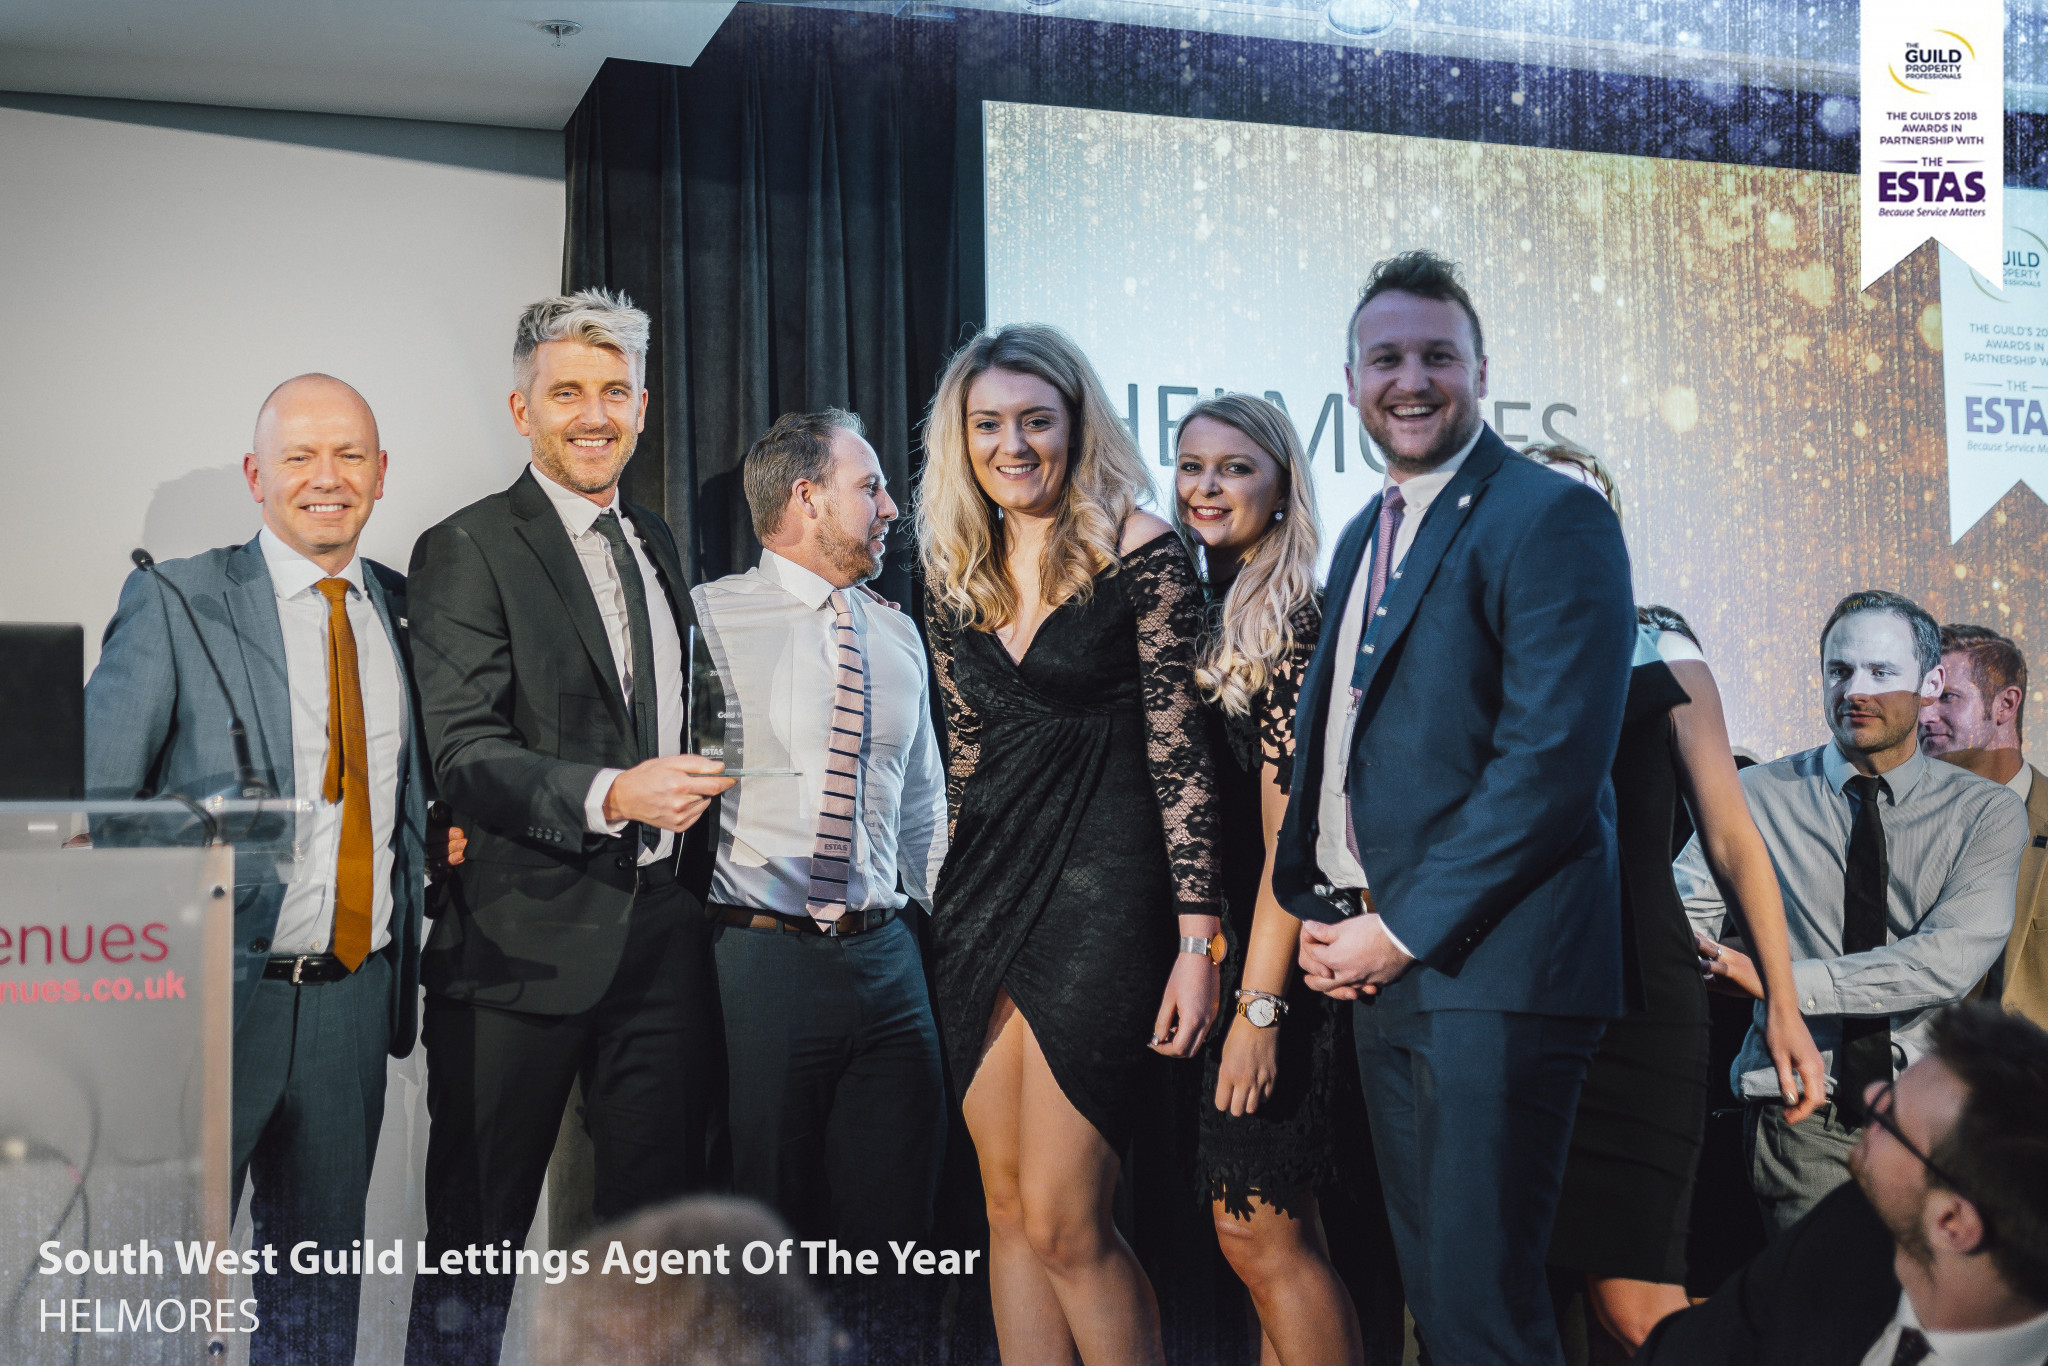 south_west_guild_lettings_agent_of_the_year_-_helmores